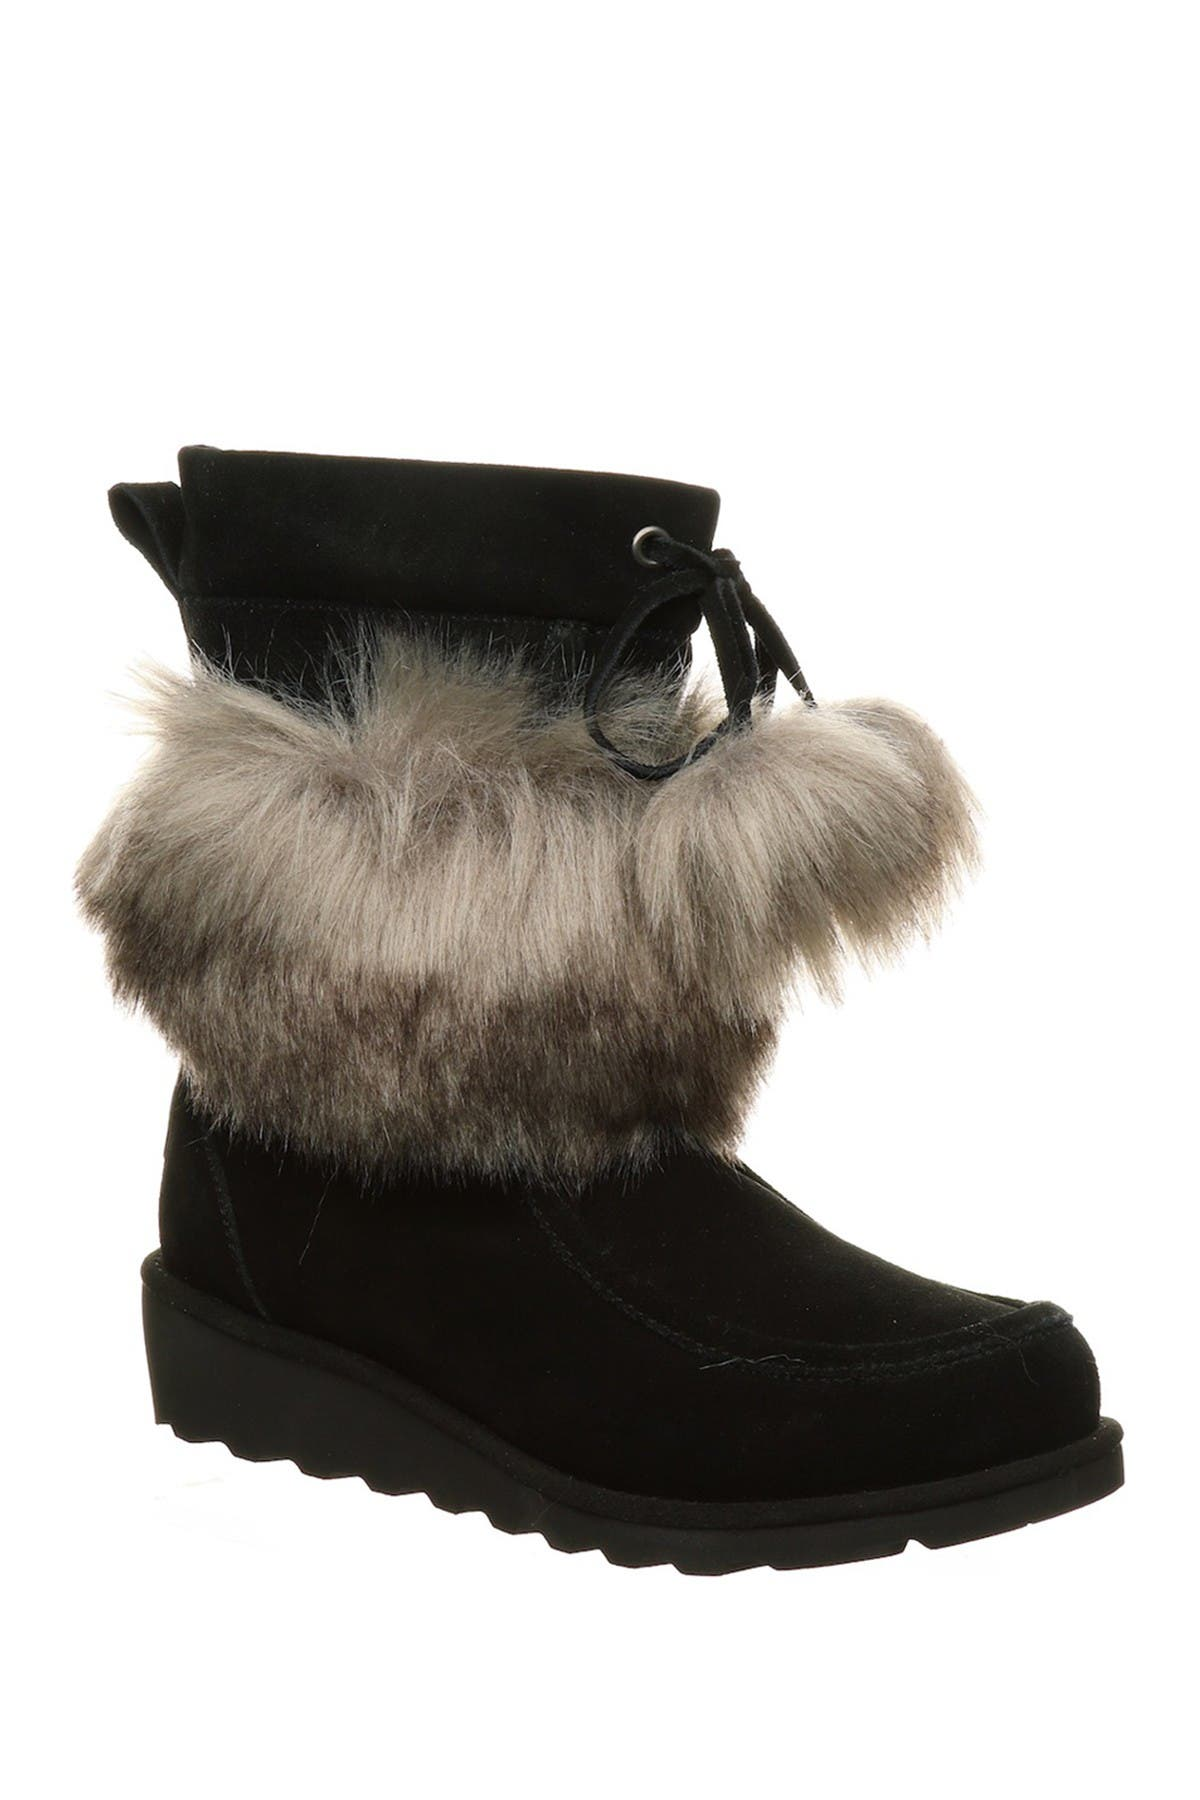 Image of BEARPAW Arden Suede & Genuine Sheepskin Faux Fur Short Boot